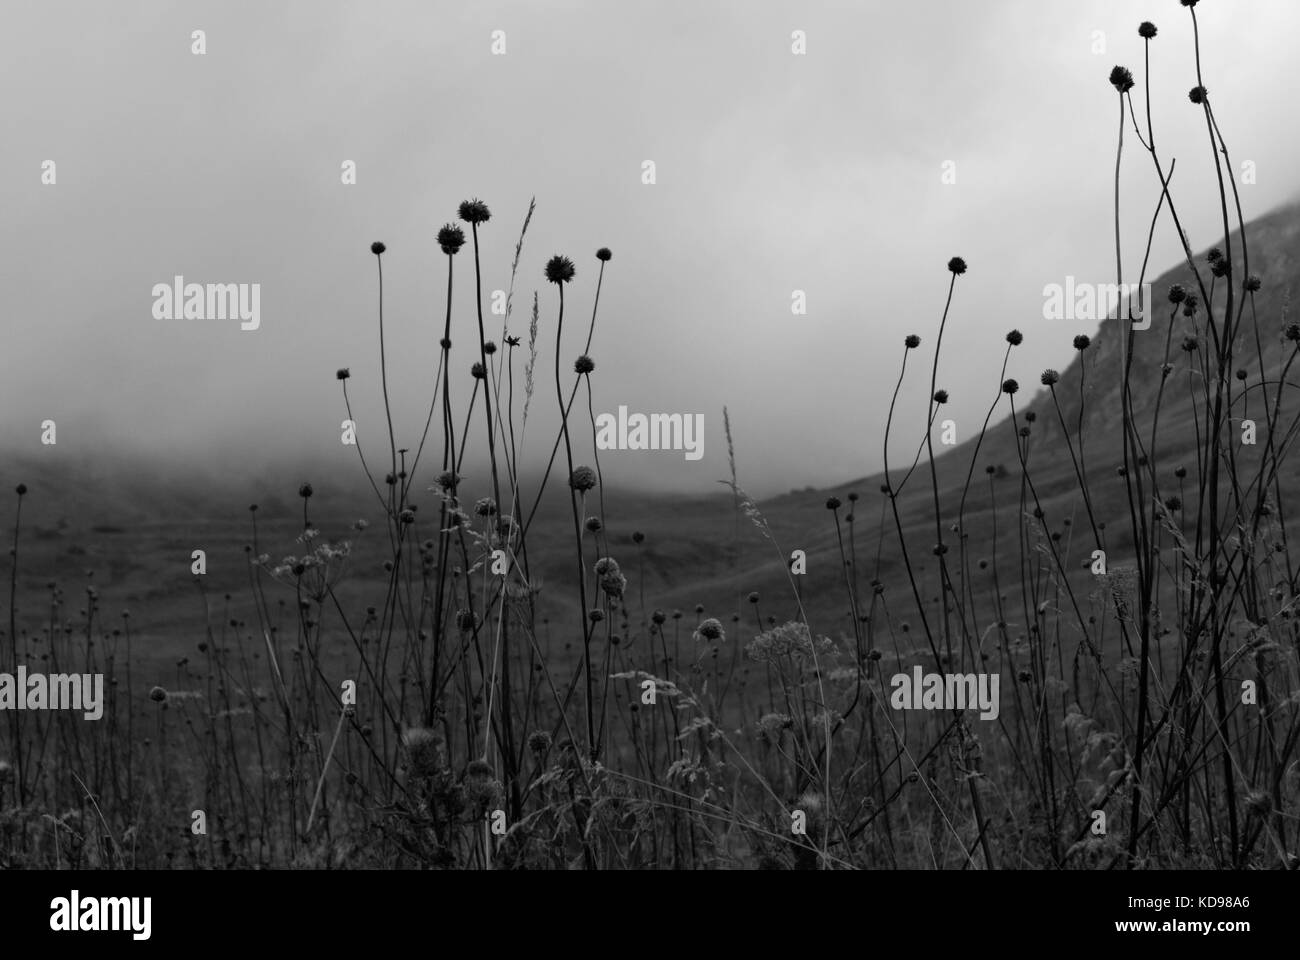 gloomy valley in the mountains, covered with a cloud, visible through the dry stems of the autumn weeds - Stock Image